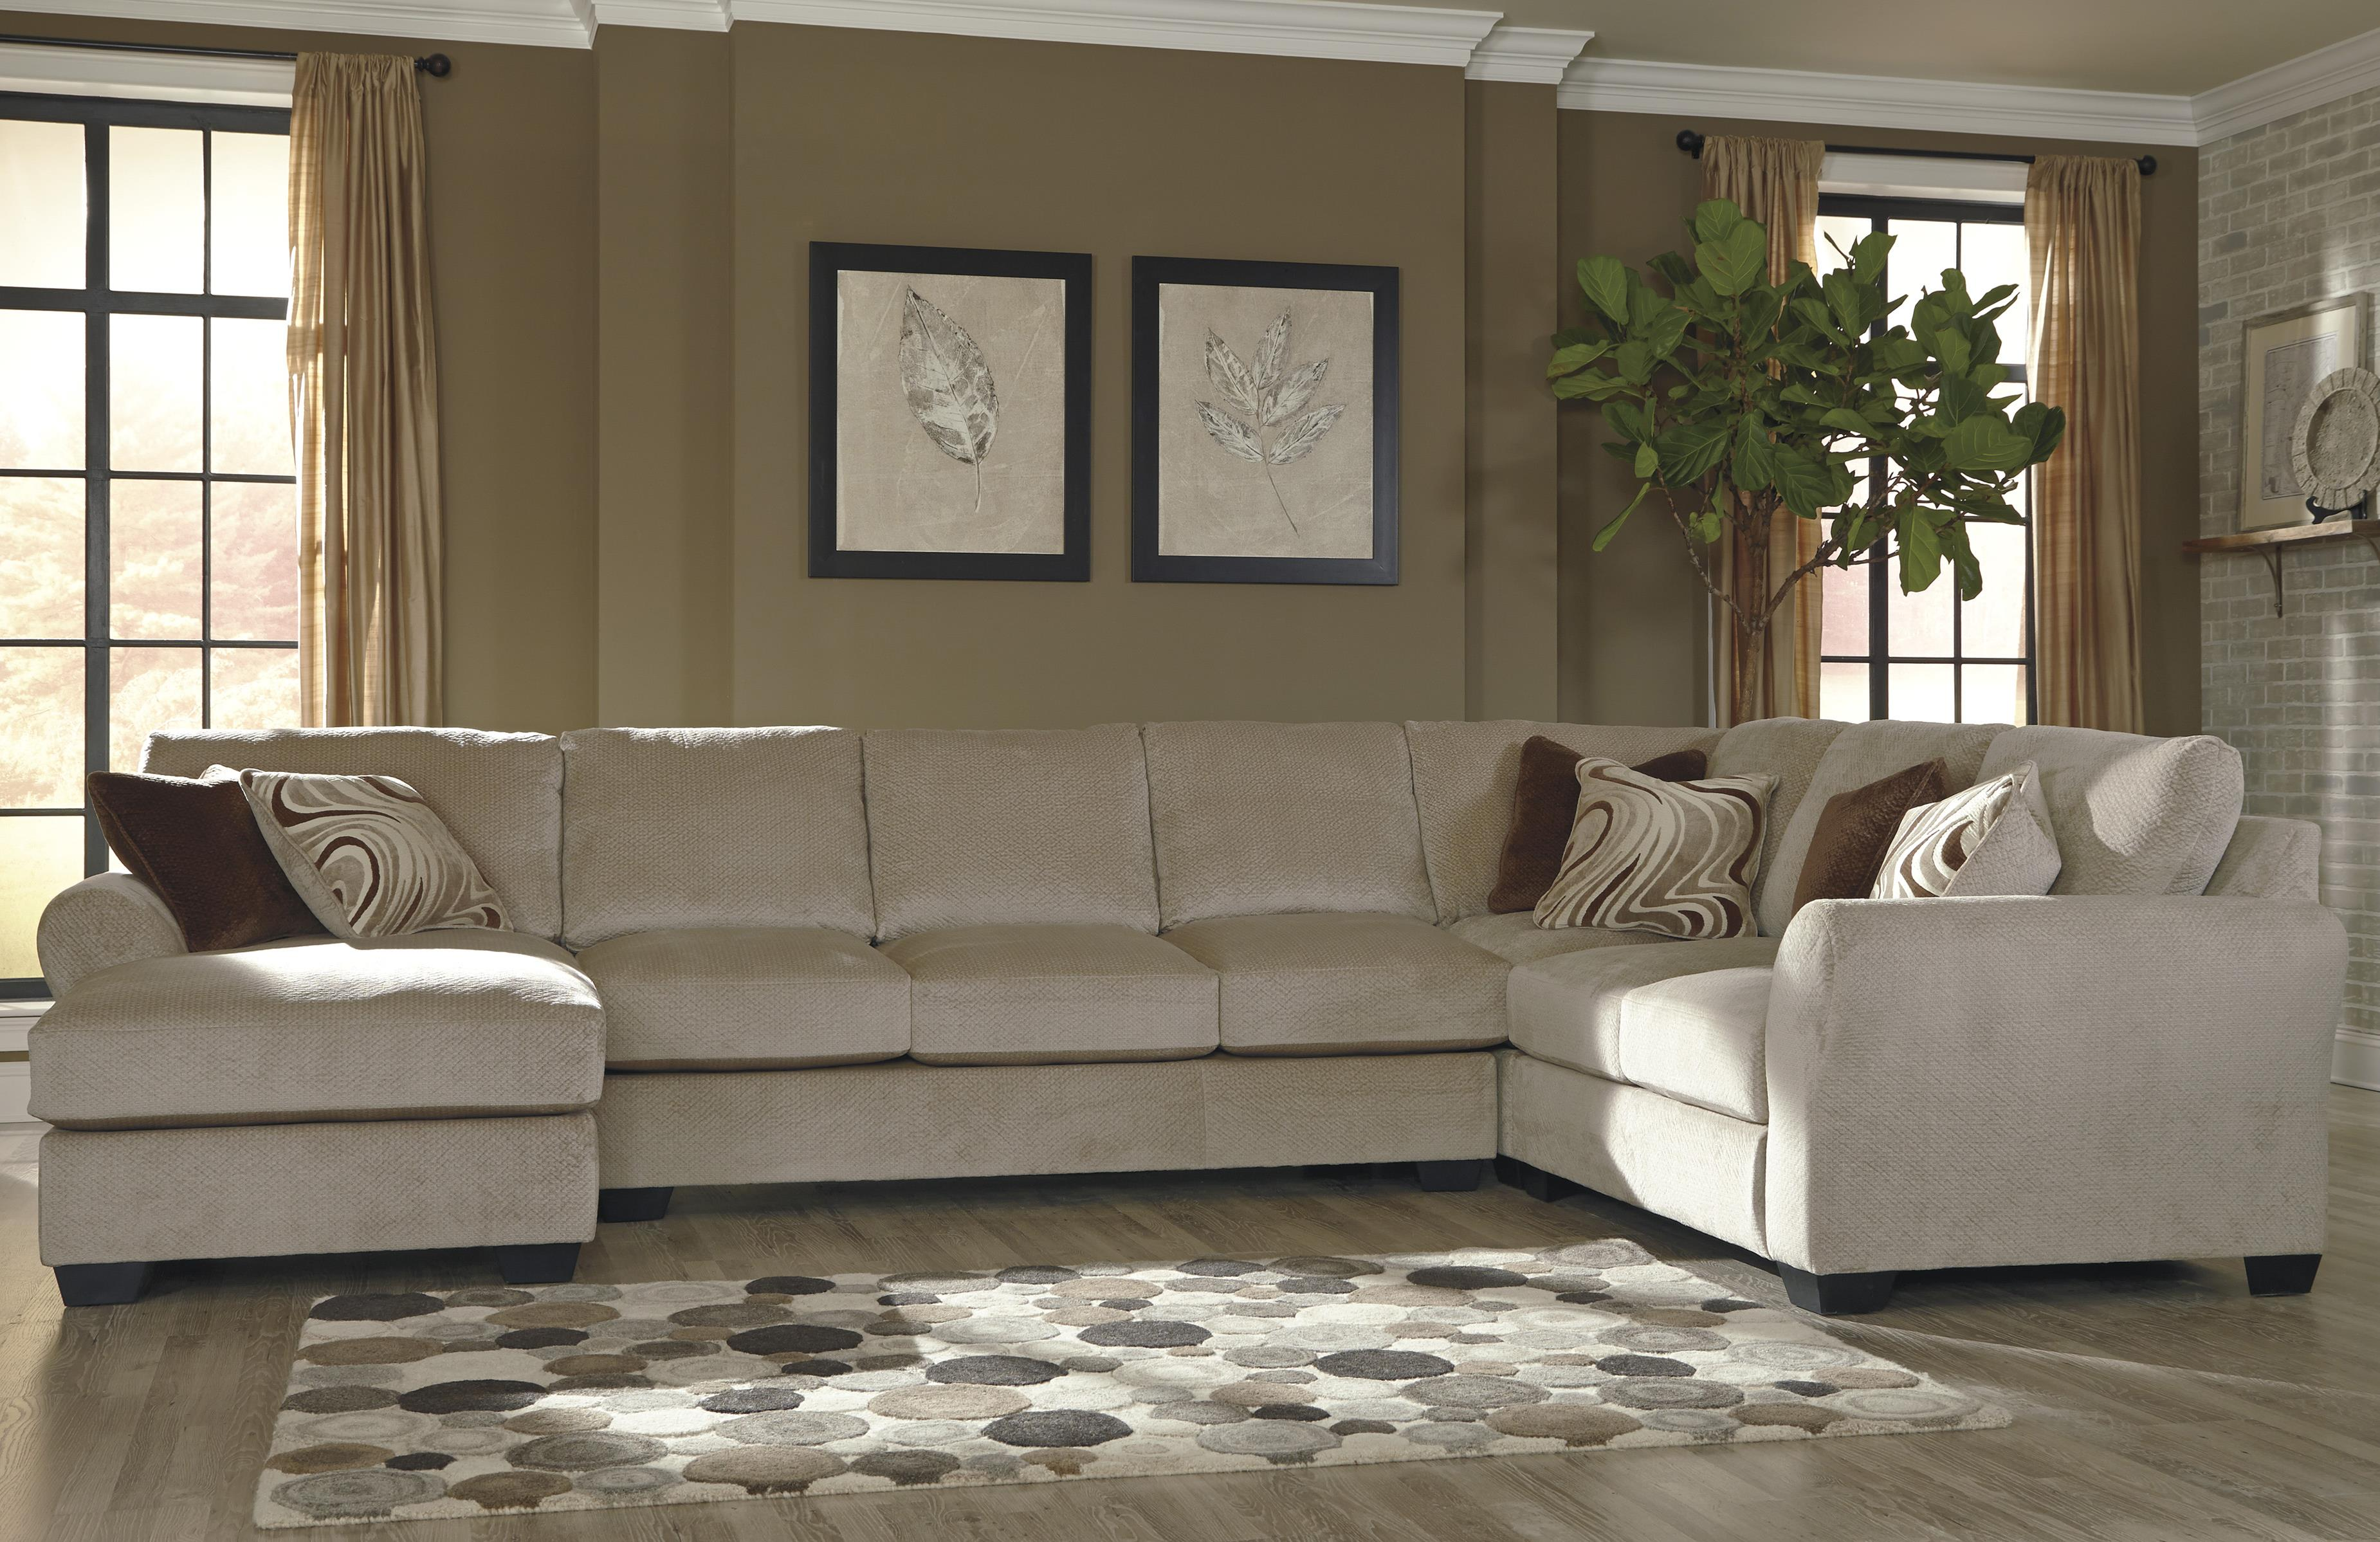 Benchcraft Hazes 4 Piece Sectional w Armless Sofa & Left Chaise